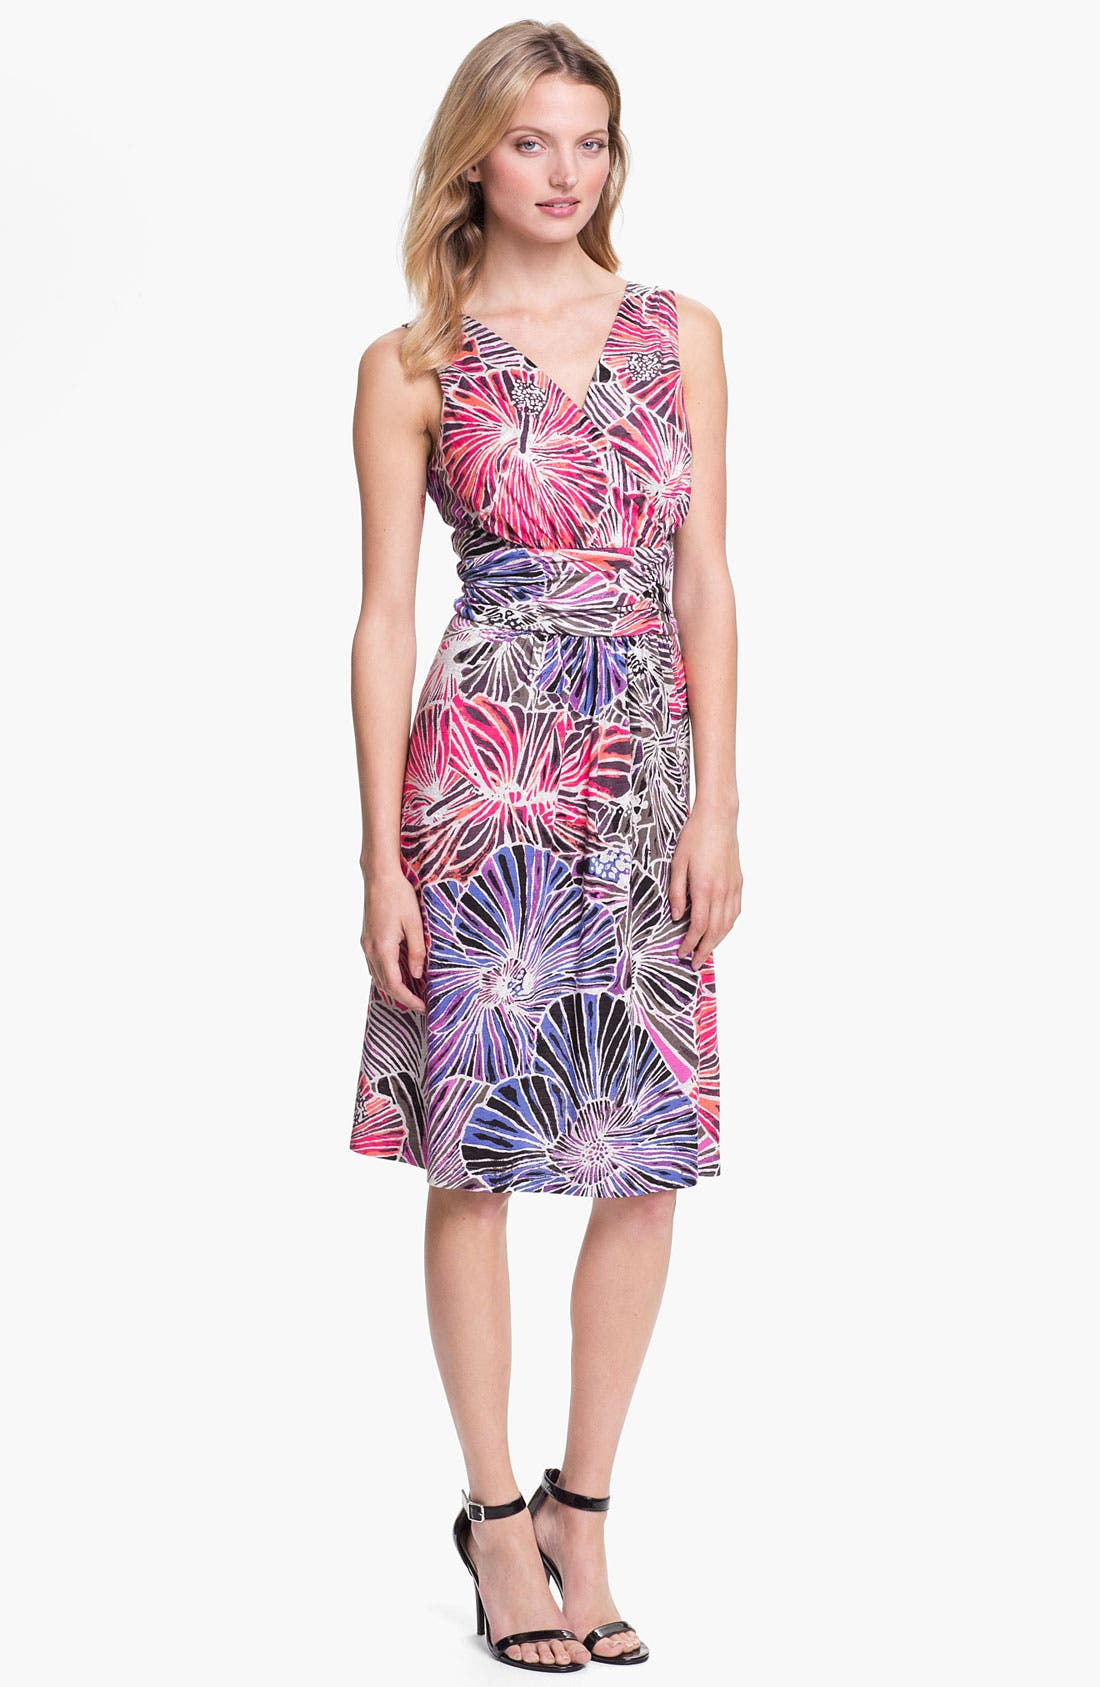 Main Image - Nic + Zoe Sleeveless Surplice V-Neck Print Dress